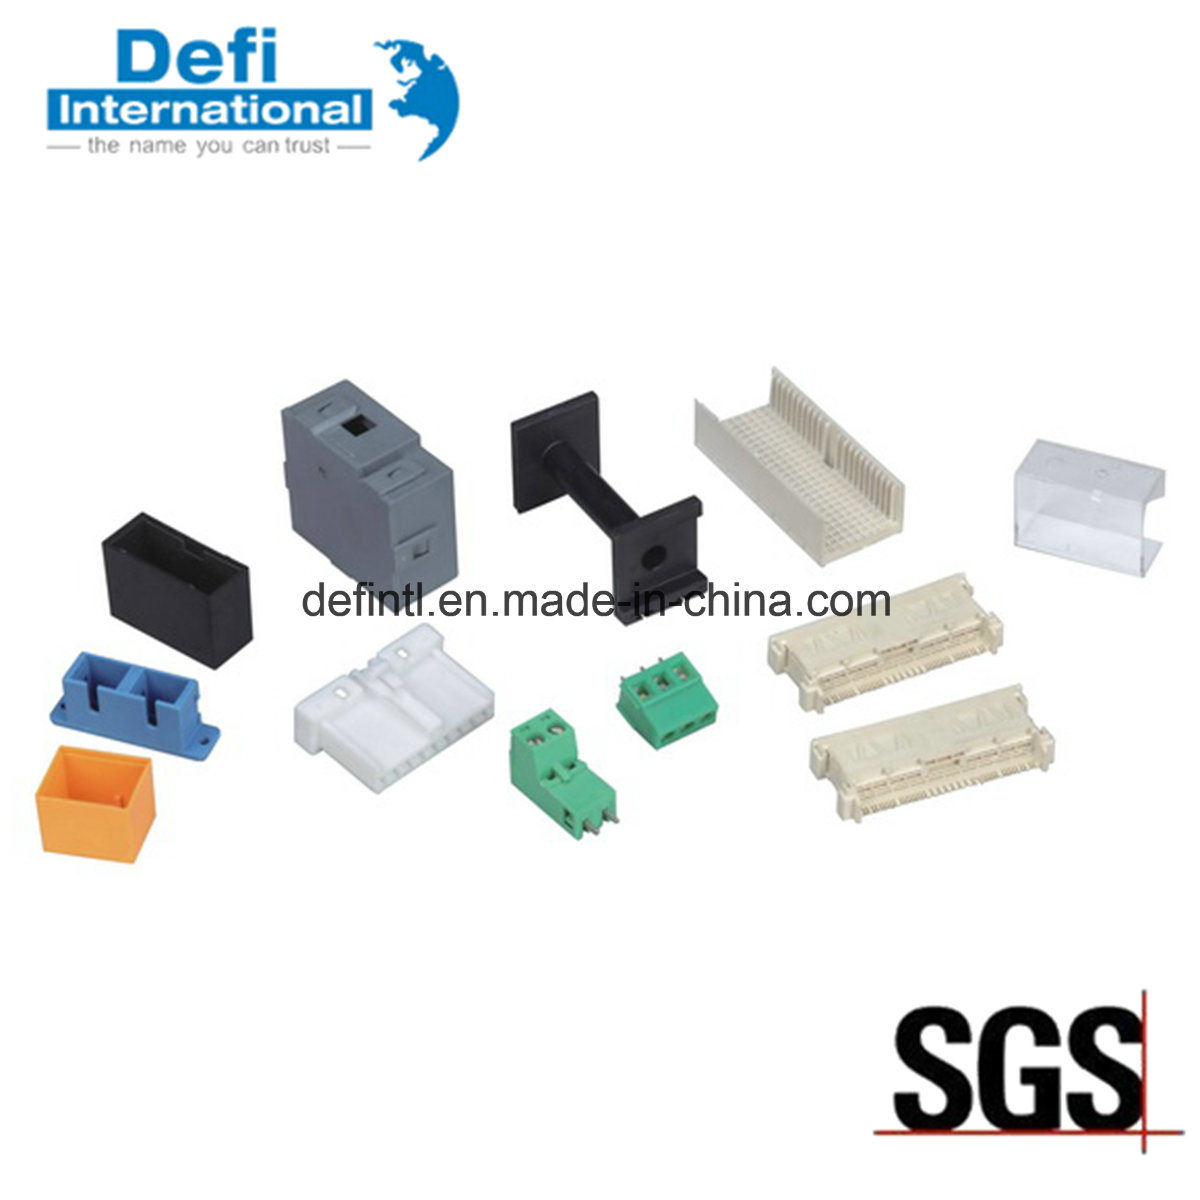 Customized Machining Small Plastic injection Molding for Plastic Parts